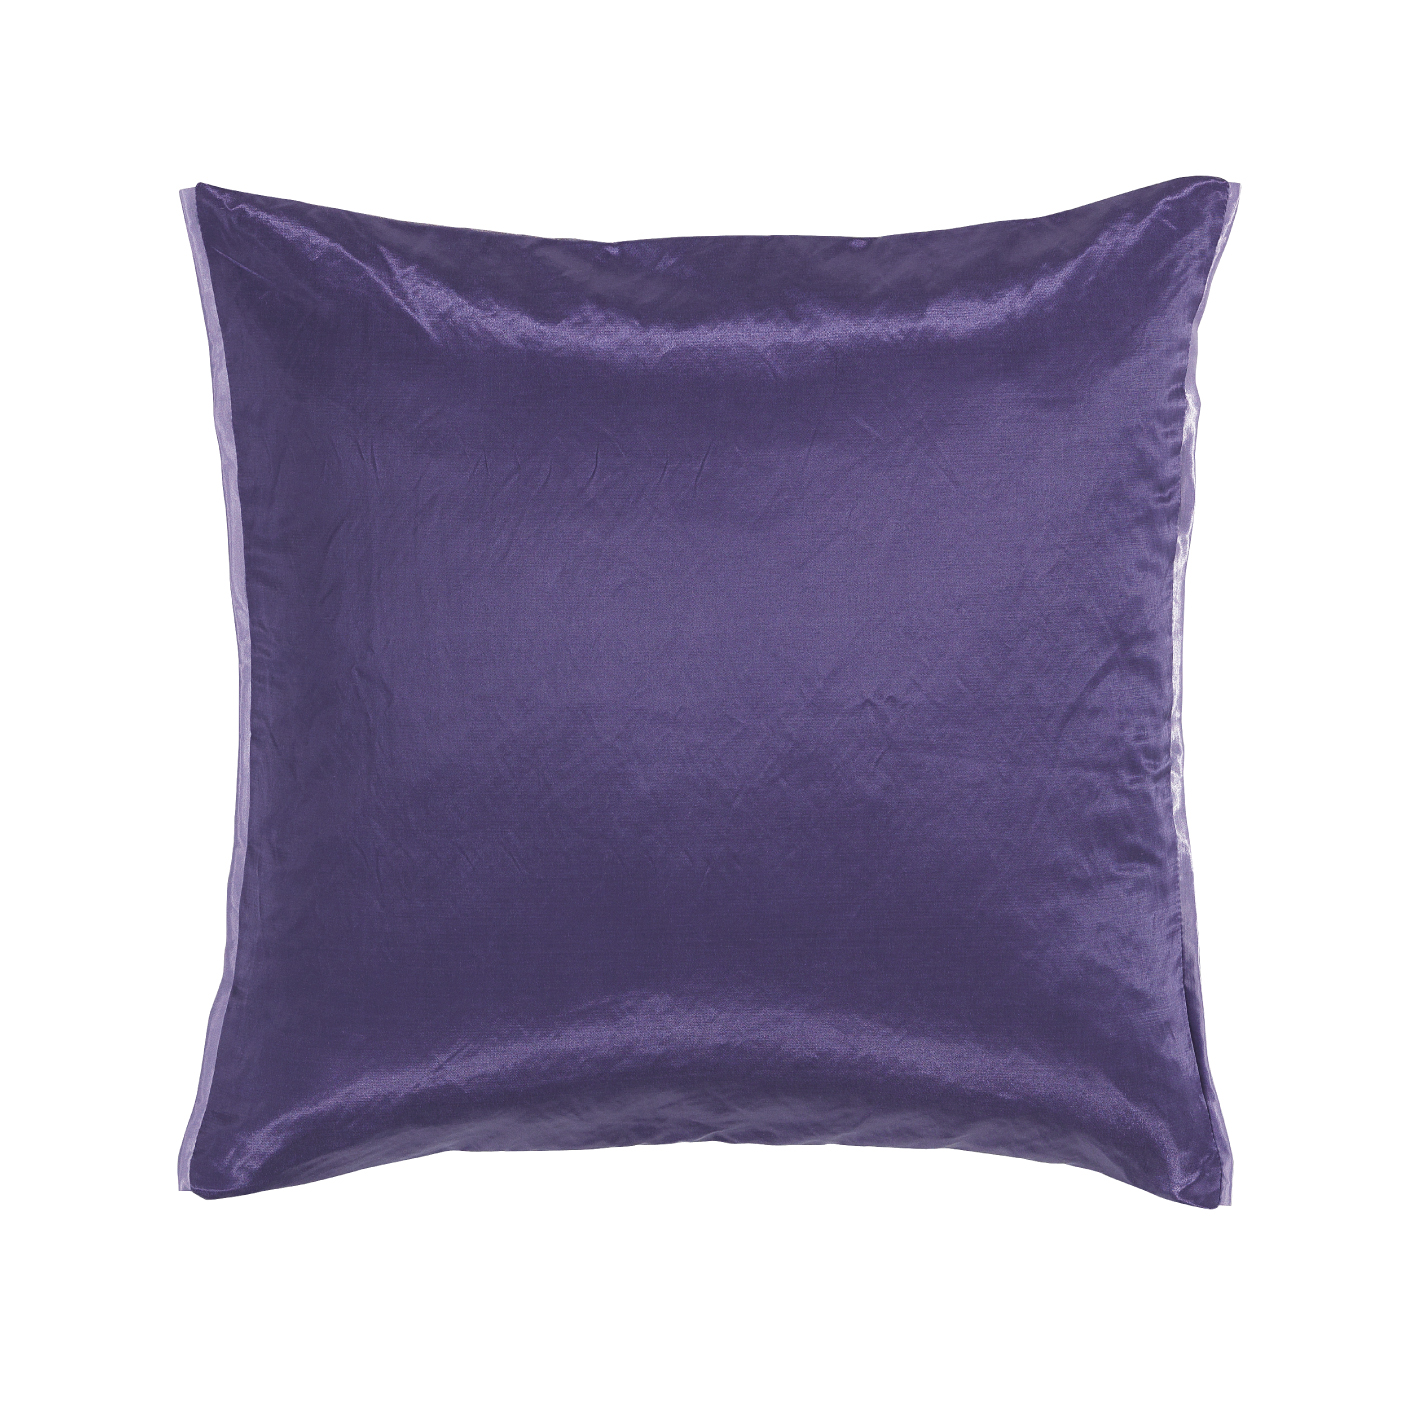 ink NameArietta Grape Cushion 40x40cm